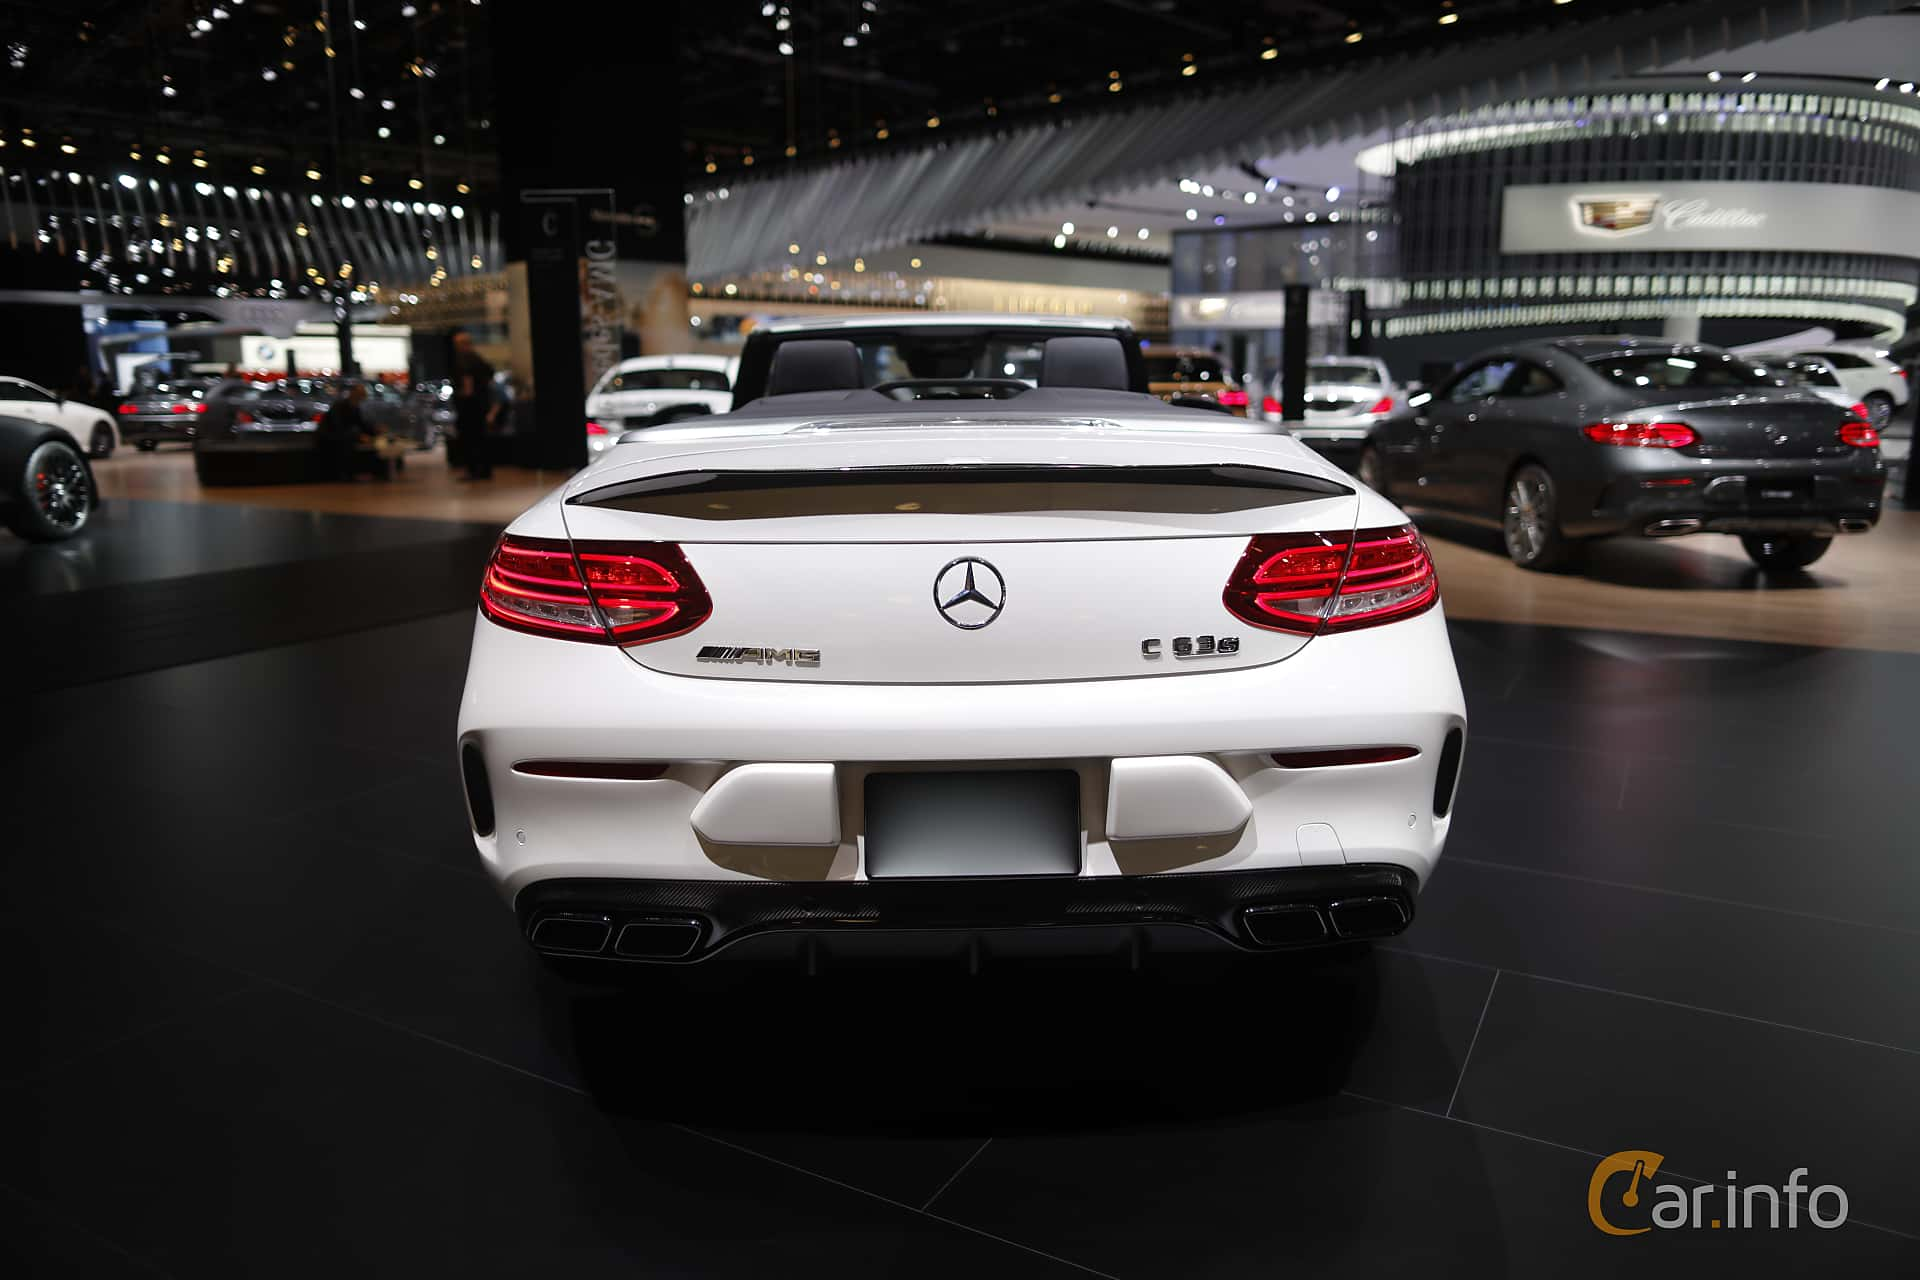 Mercedes-Benz AMG C 63 S Cabriolet 4.0 V8 , 510hp, 2017 at North American International Auto Show 2017